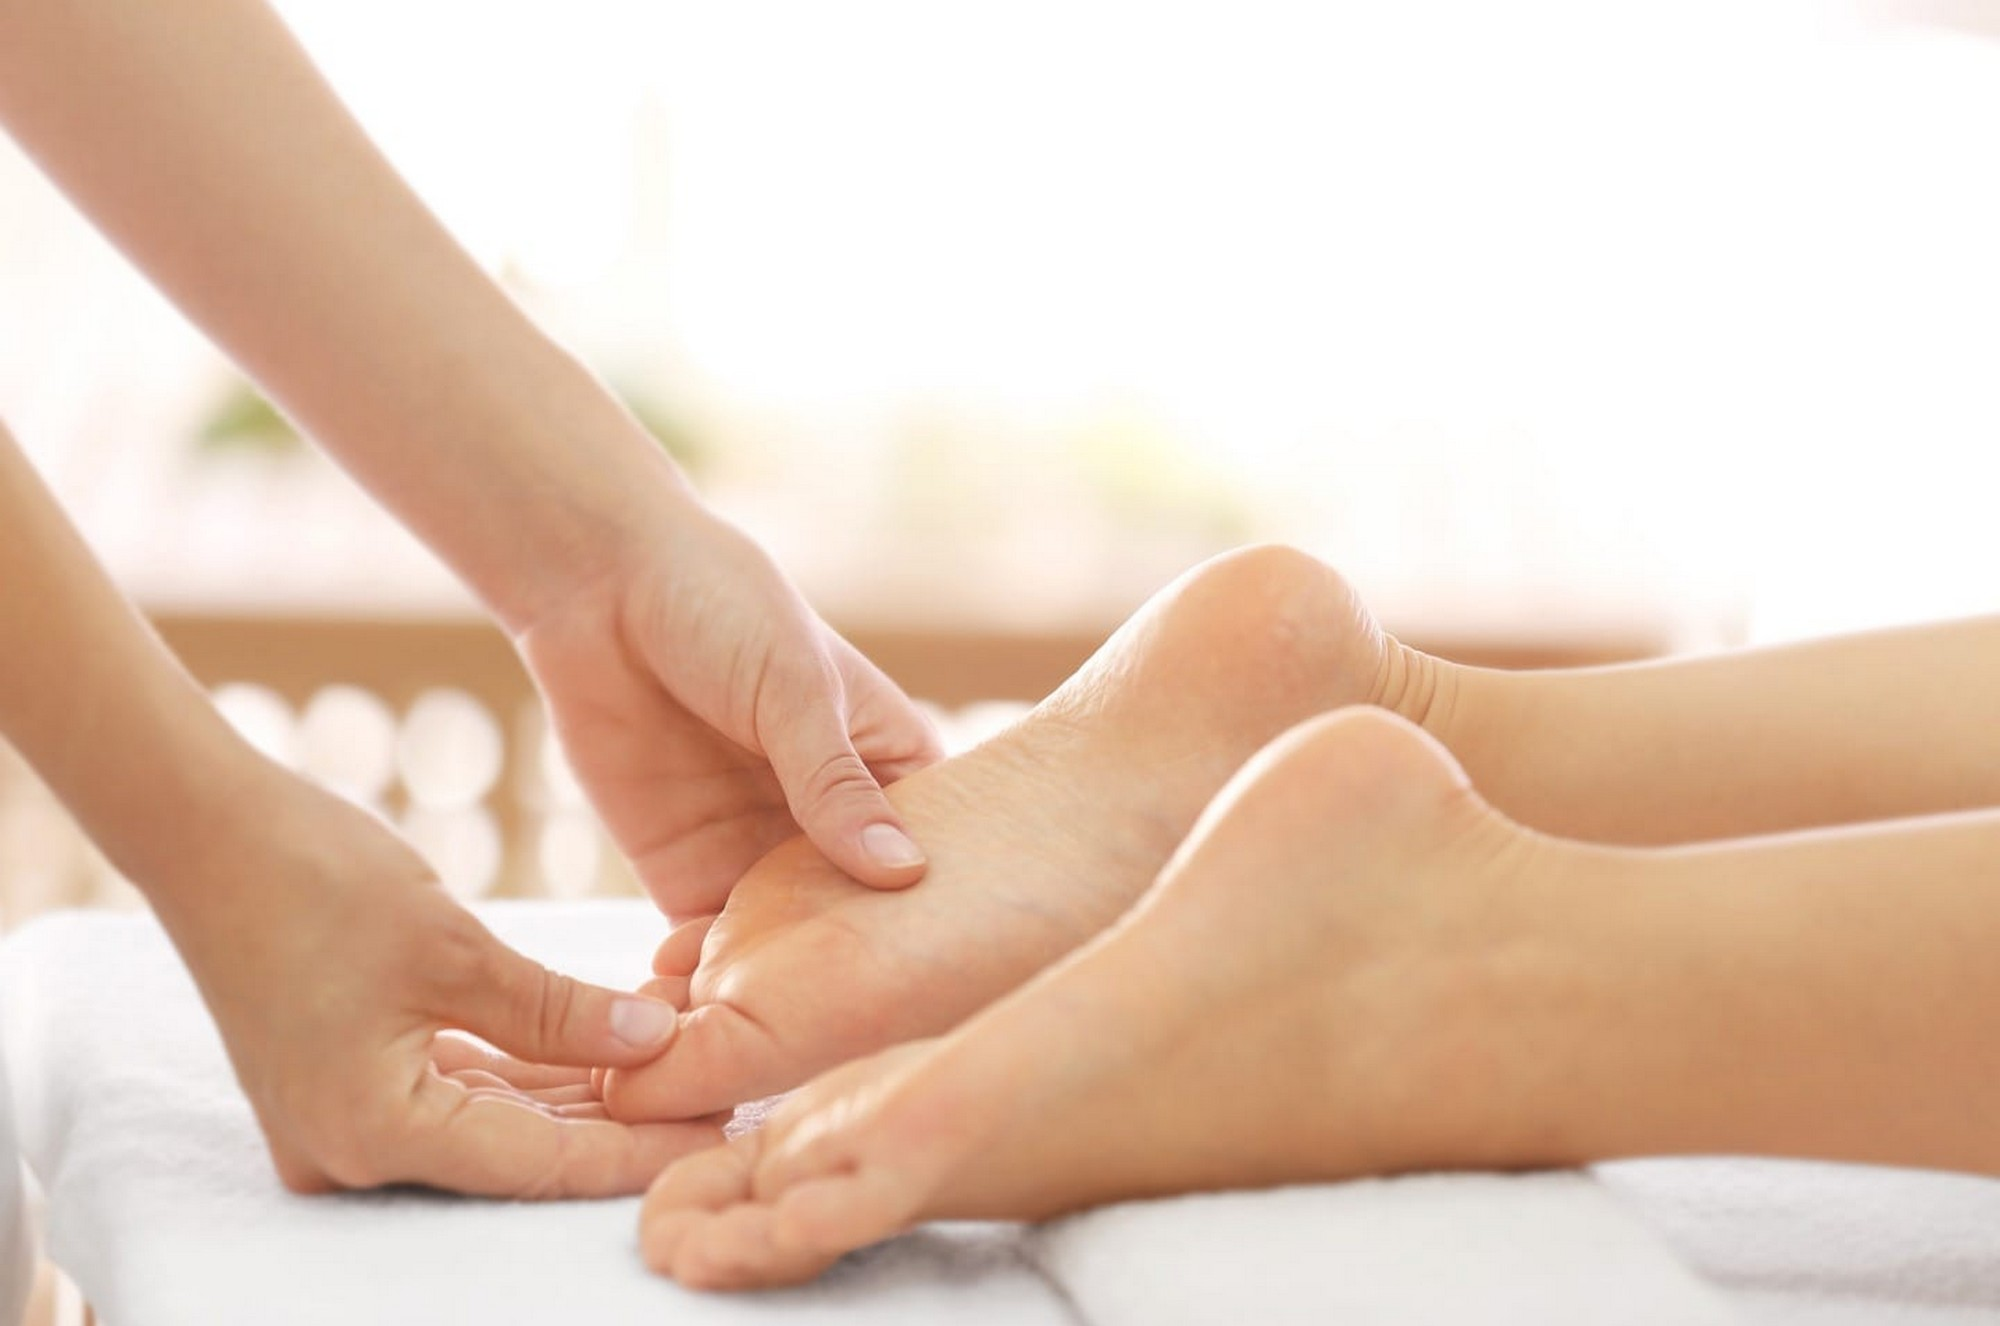 Reflexology Massage In Dubai